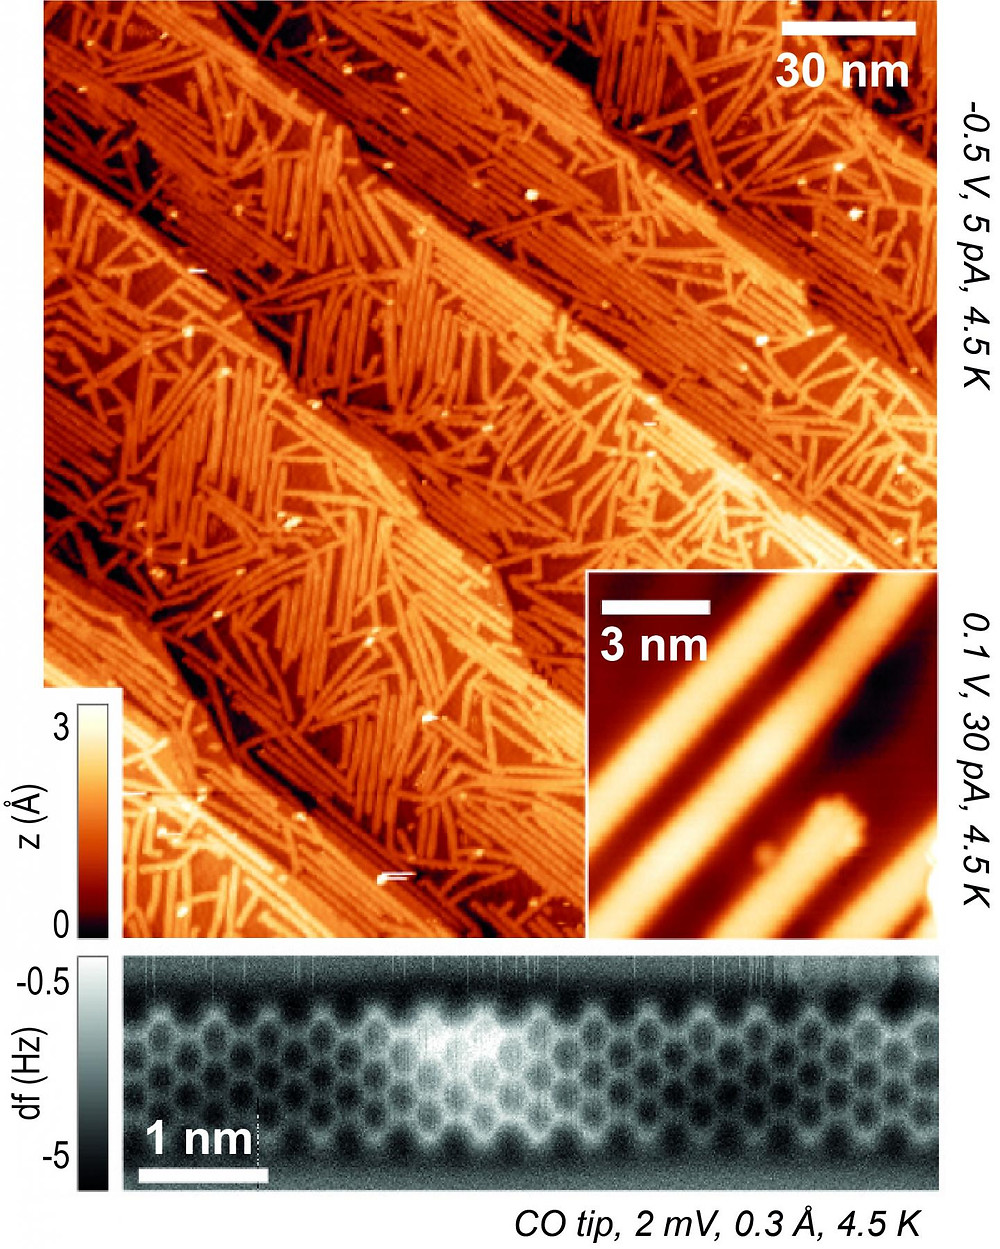 The microscopic ribbons lie criss-crossed on the gold substrate. @  EMPA